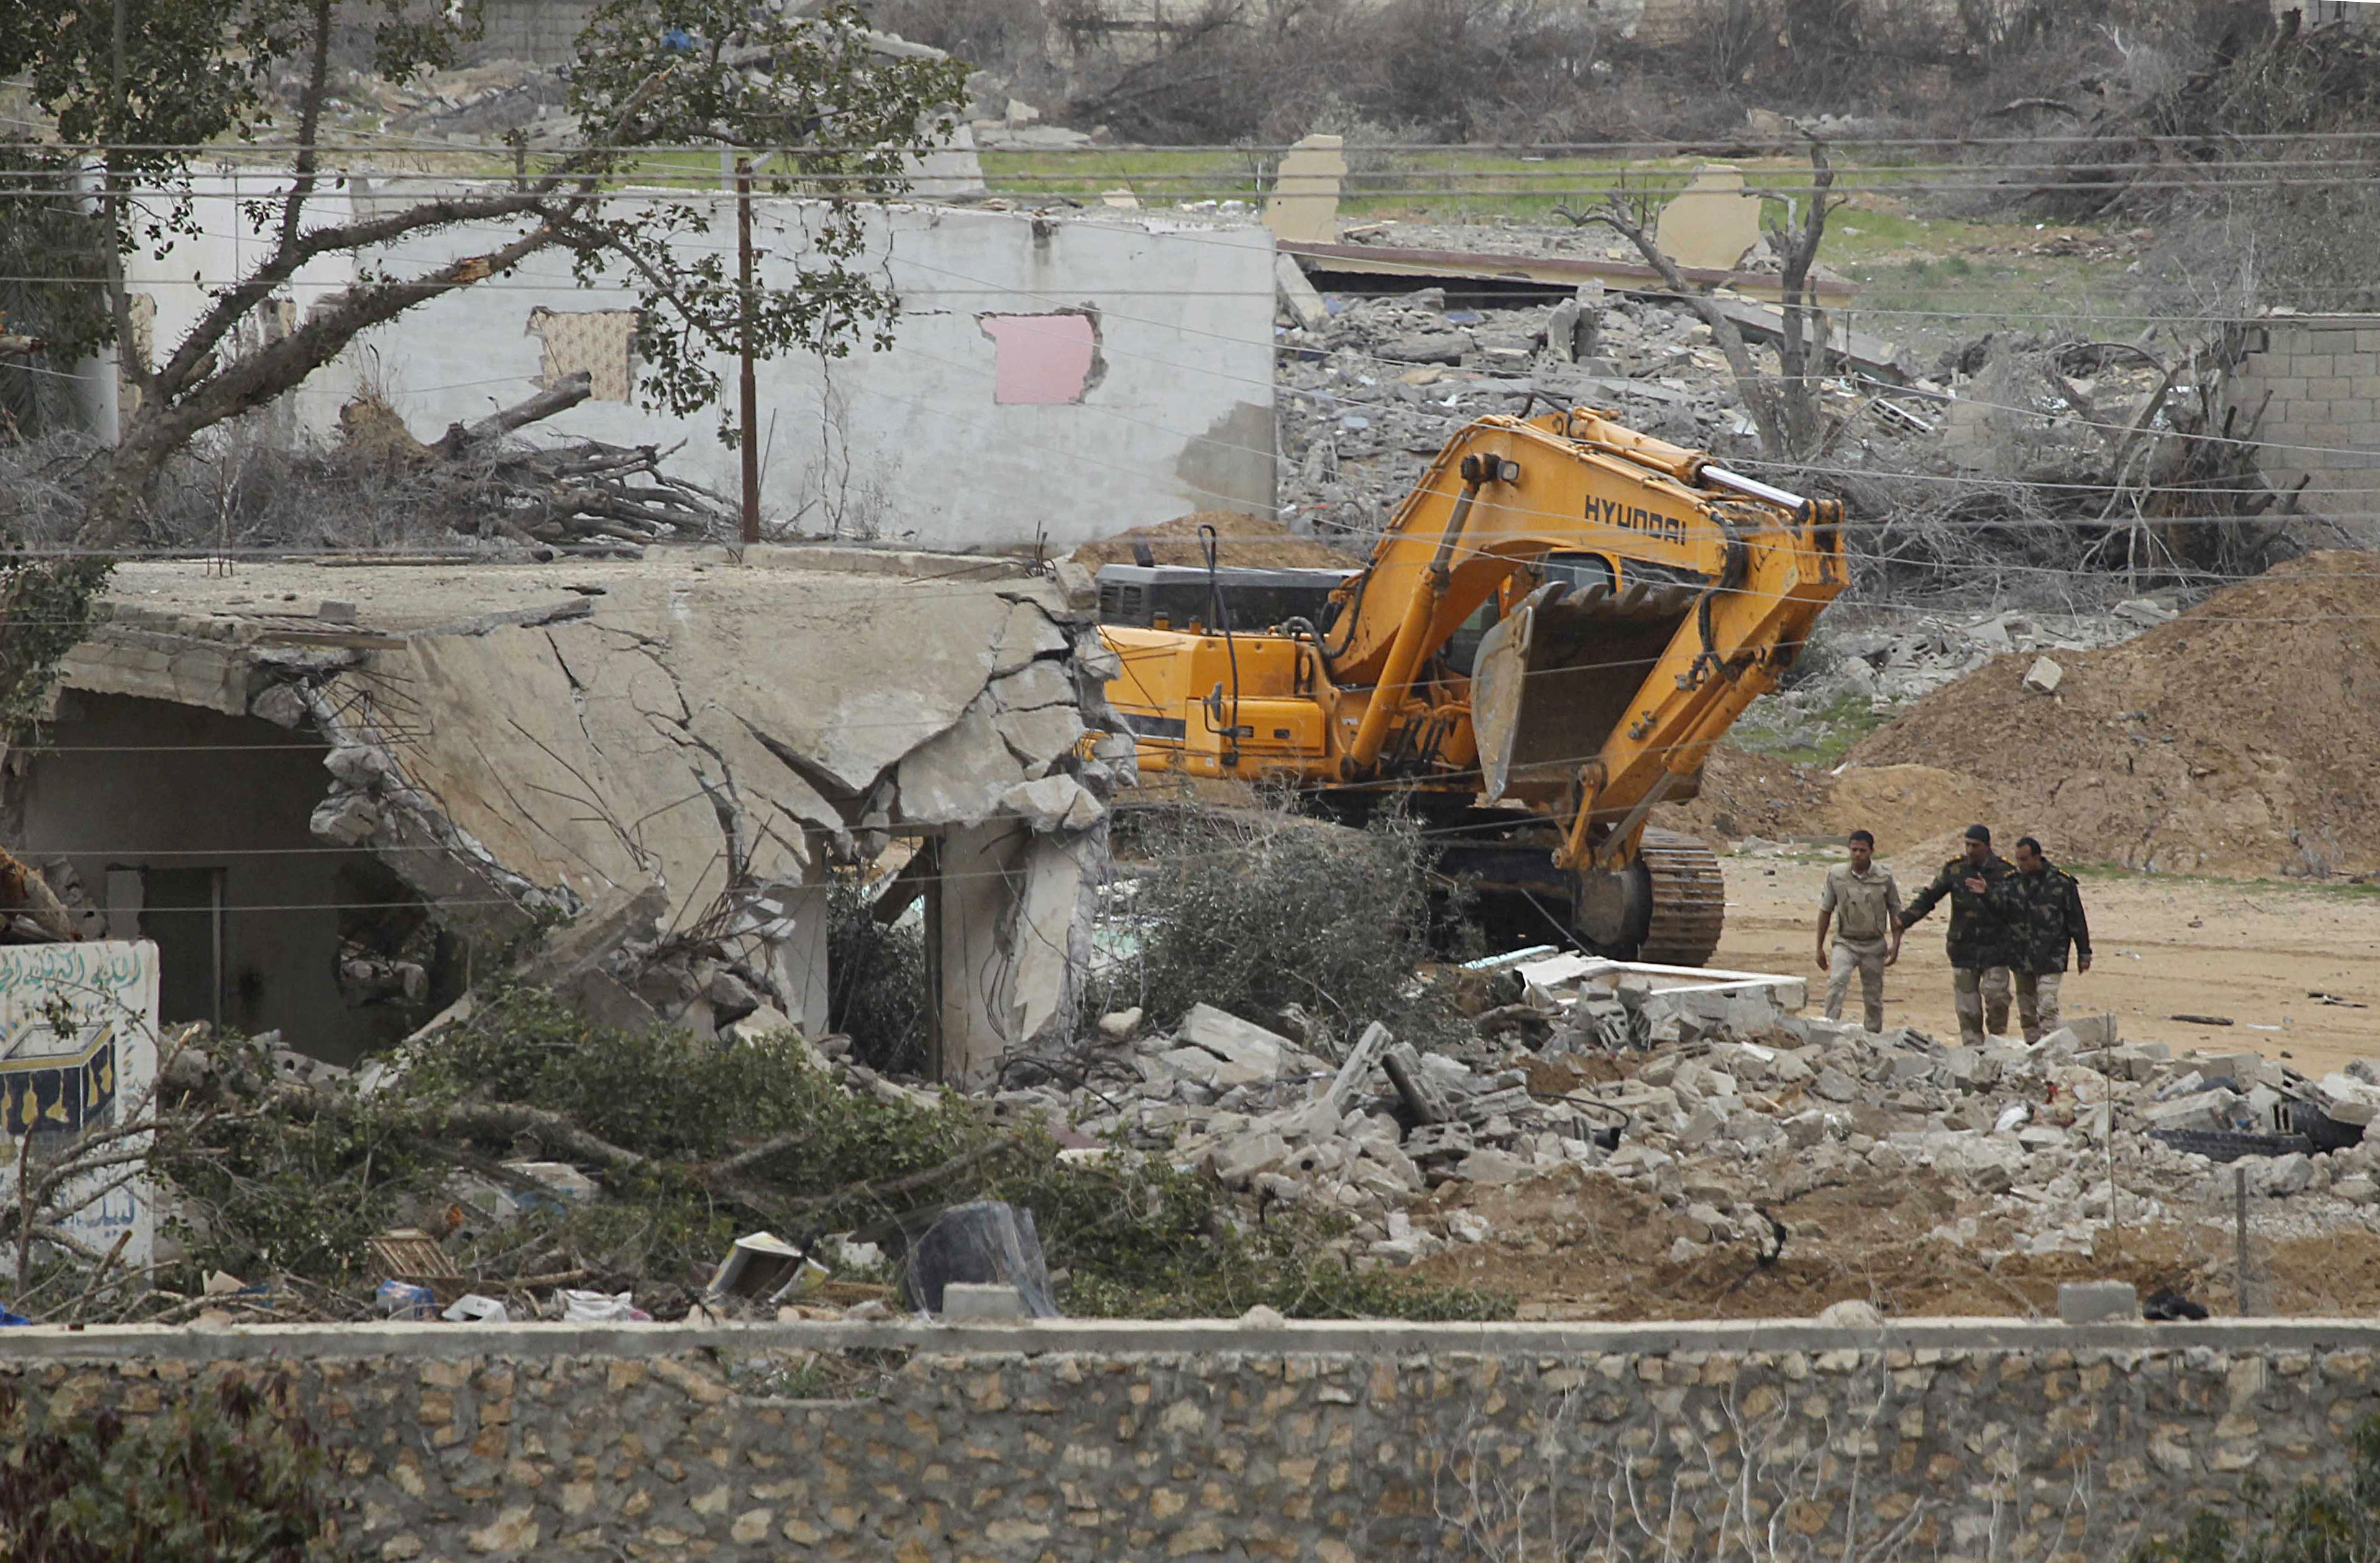 A picture taken from the Southern Gaza Strip shows a mechanical digger used by the Egyptian army in search of tunnels on the border with Egypt and the Gaza Strip on February 15, 2014. Much of the smuggling tunnels were destroyed following the Egyptian military's July 2013 overthrow of Islamist president Mohamed Morsi, seen as a Hamas ally.  (AFP PHOTO / SAID KHATIB)